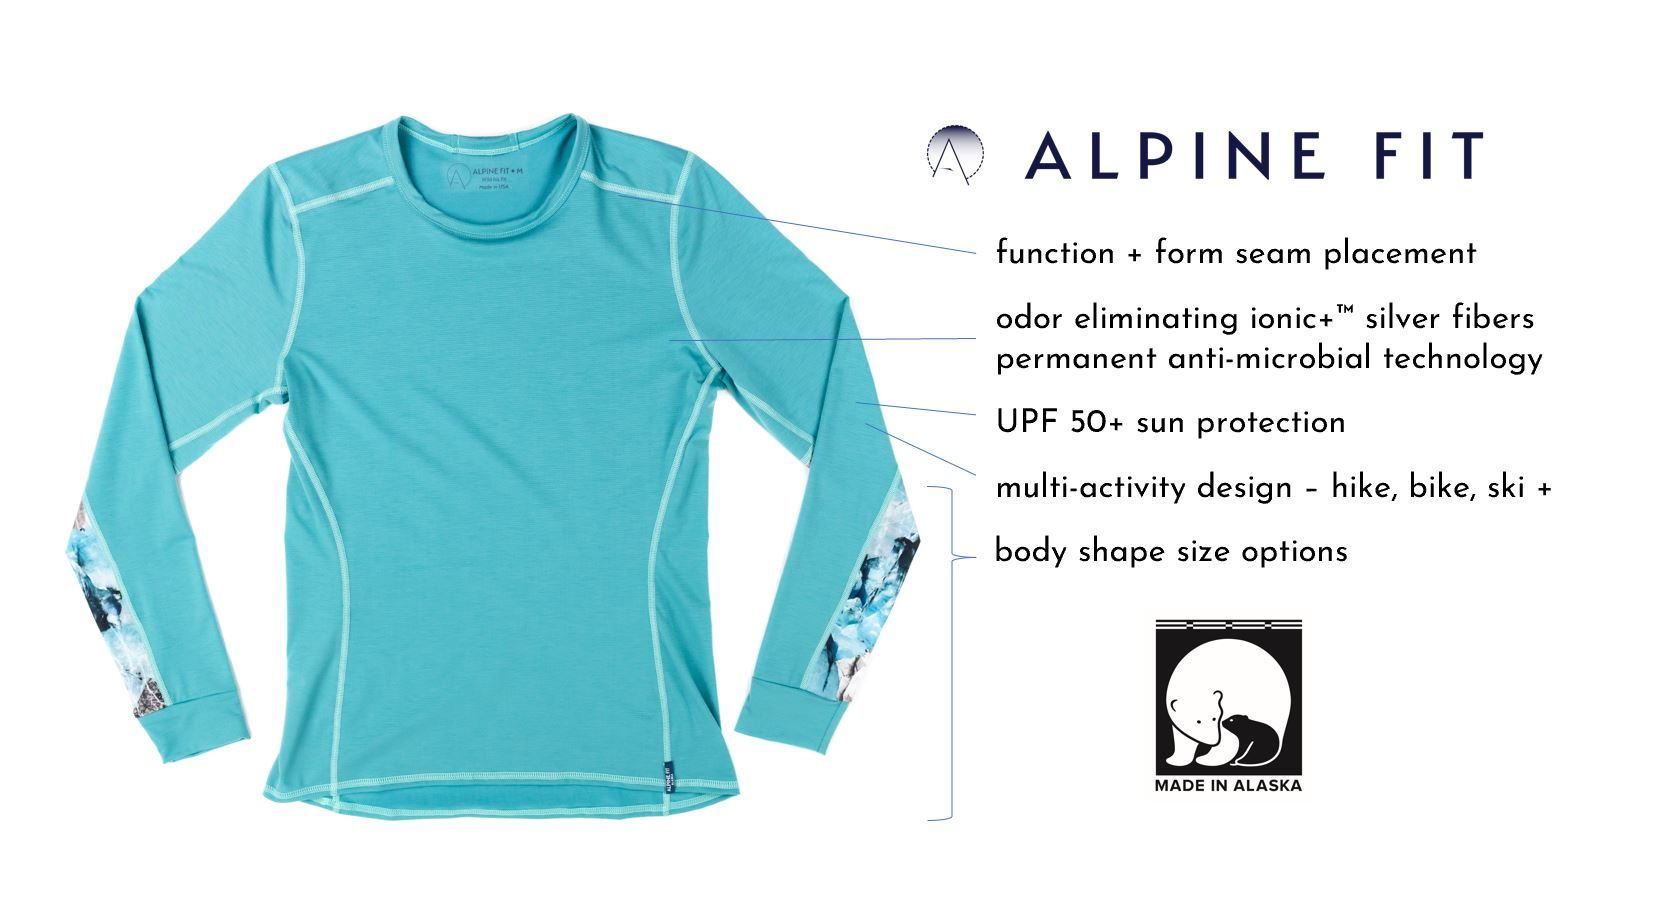 alpine-fit-product-callouts